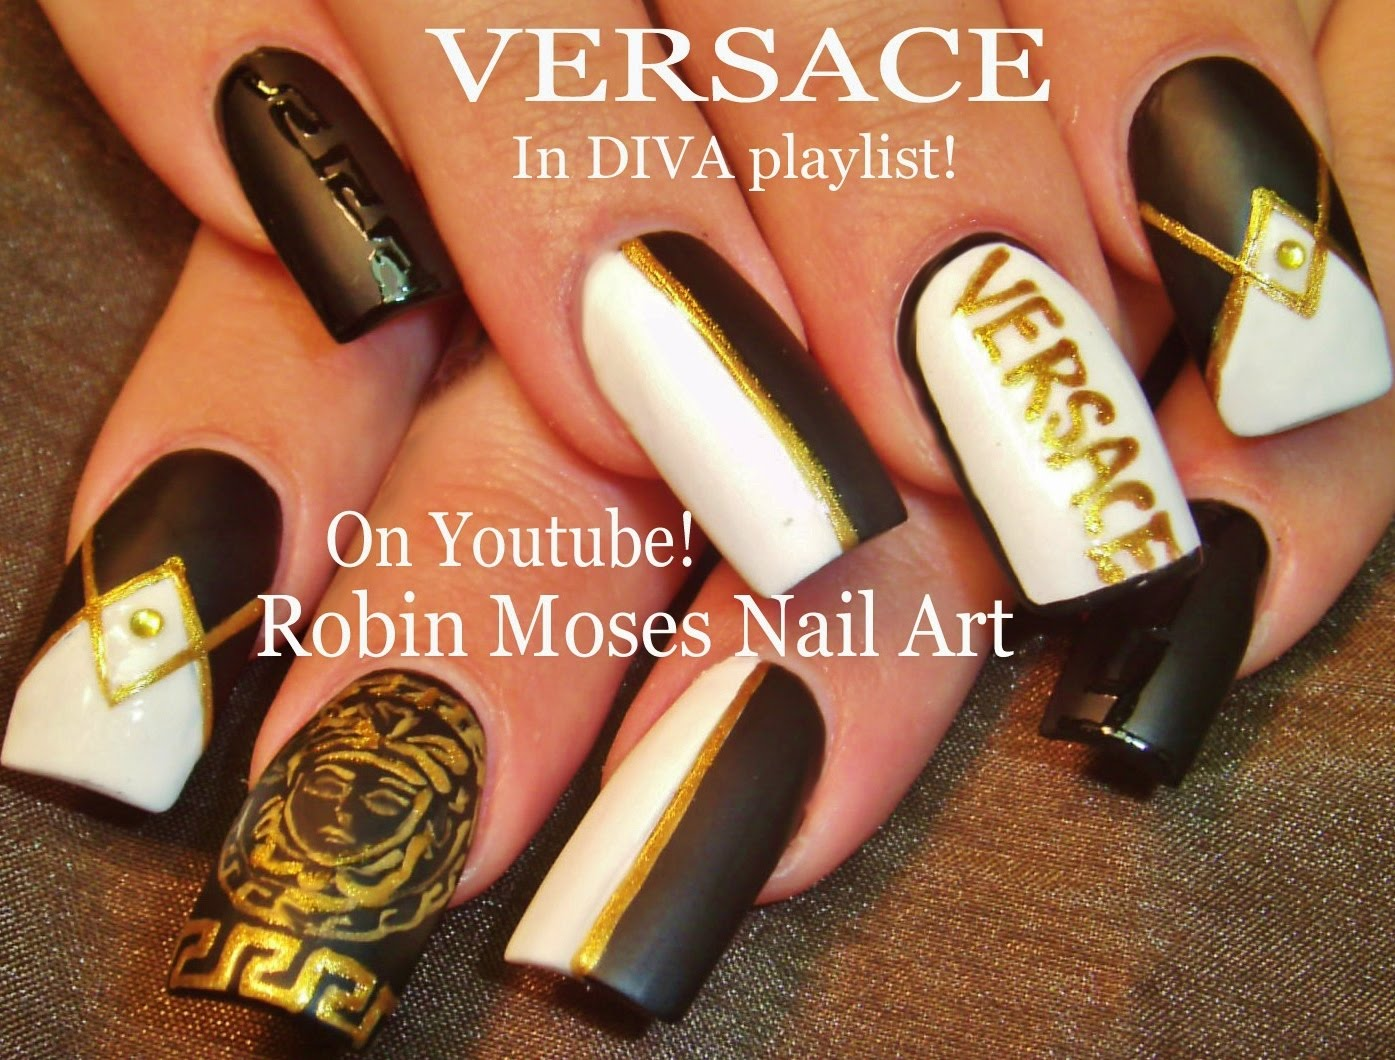 Try Out These Versace Diva Nails Perfect For Any Fashionista